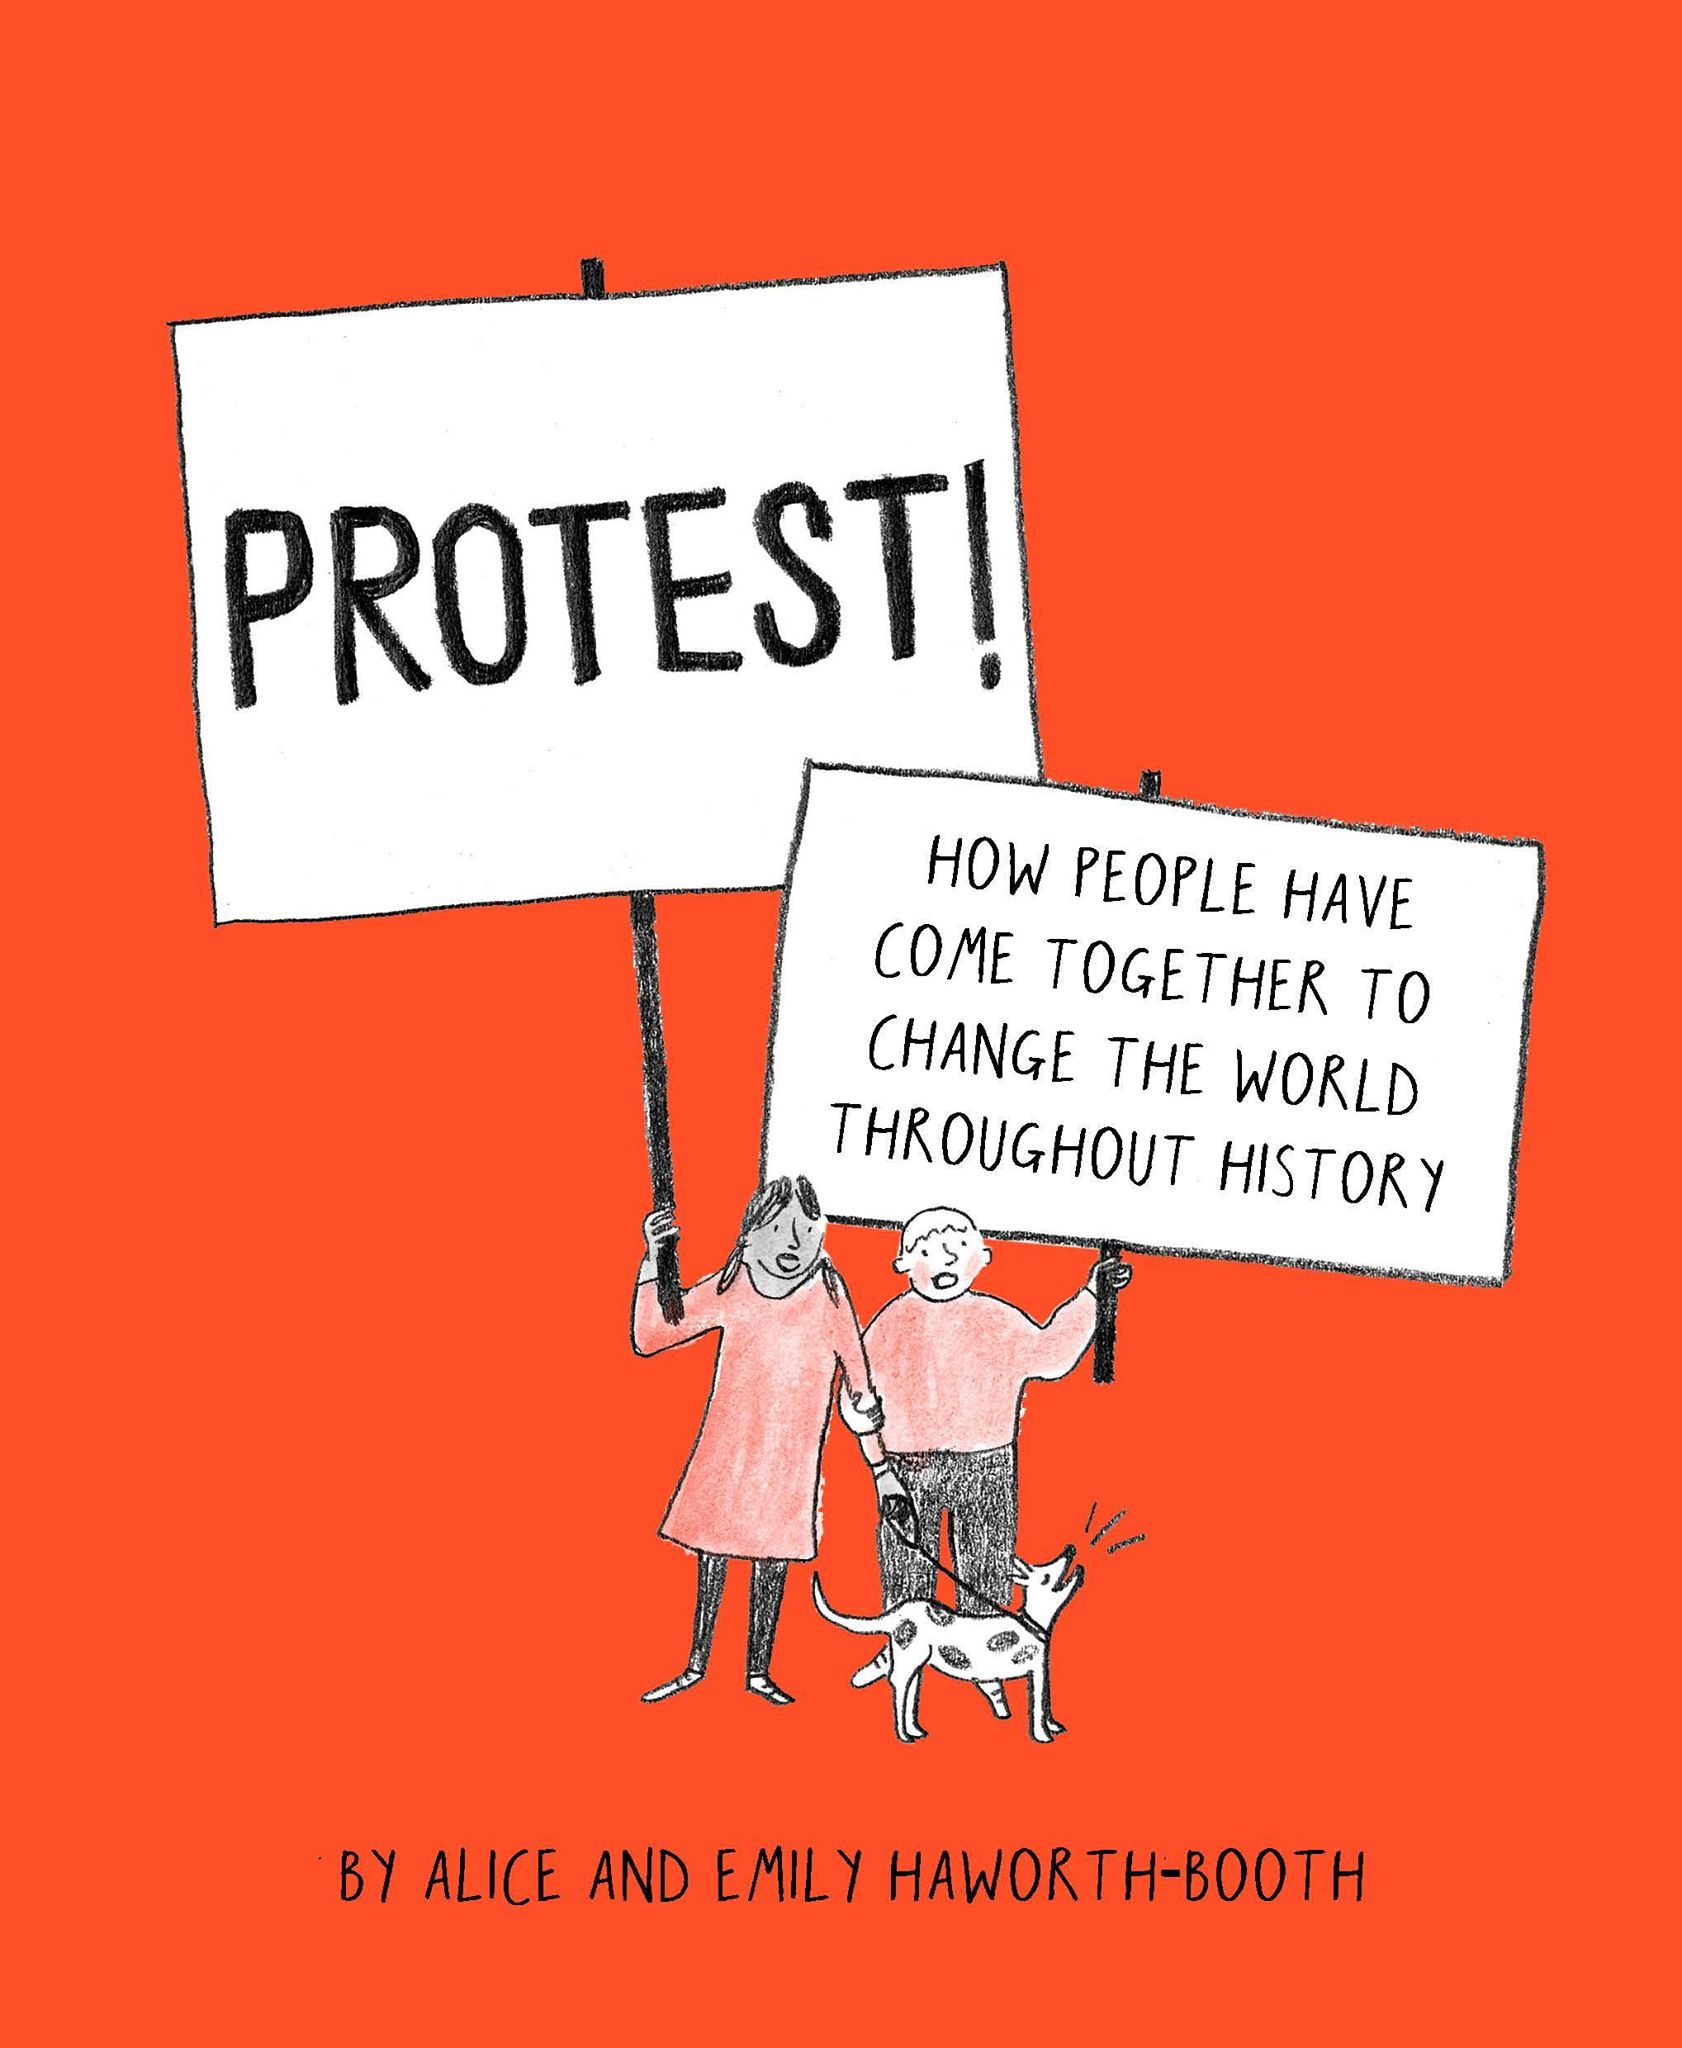 Protest!: How People Have Come Together to Change the World Throughout History